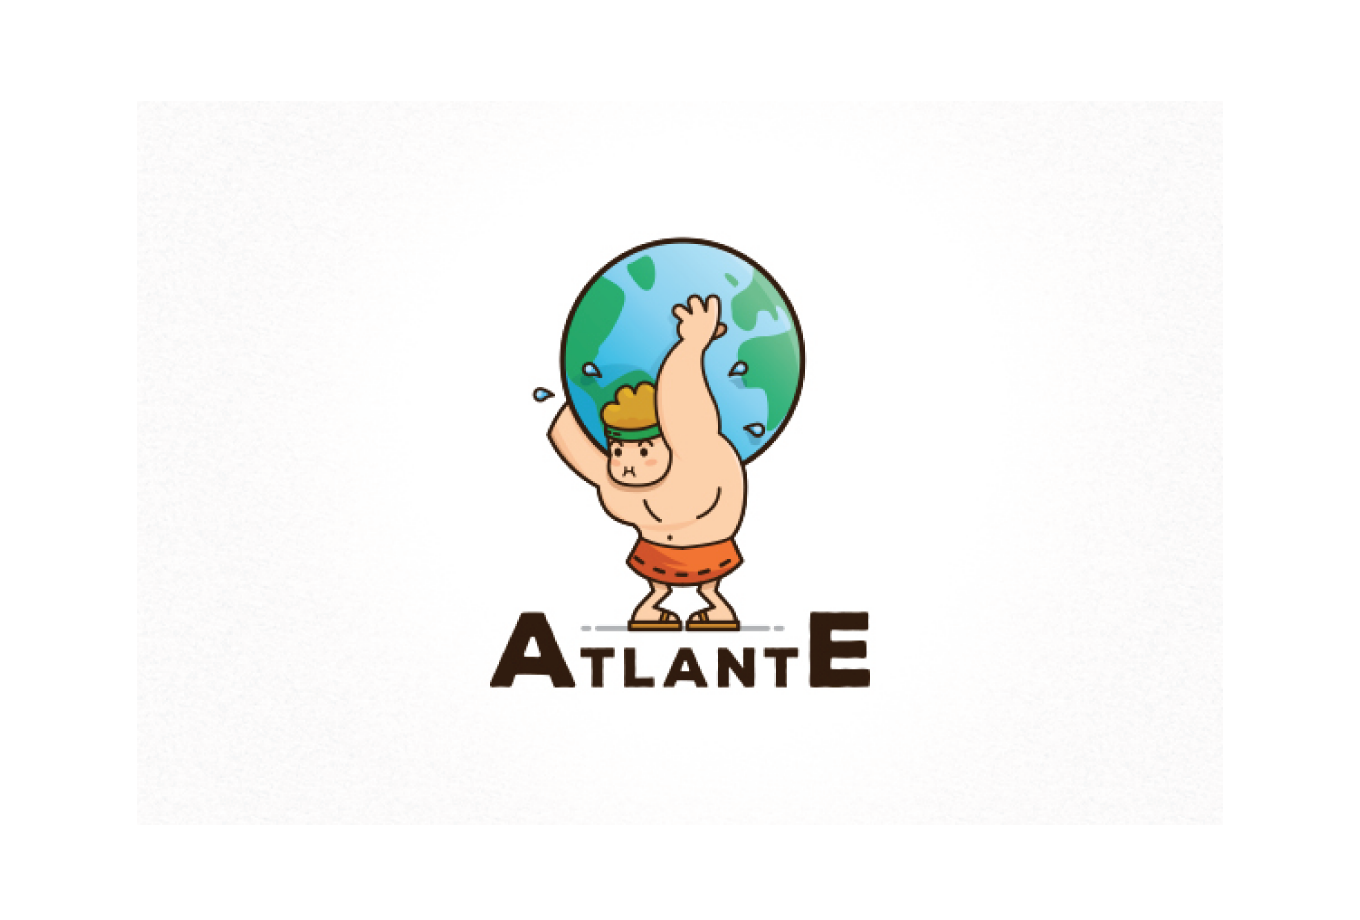 Atlante globe world earth logo design logo cowboy for Atlante compass